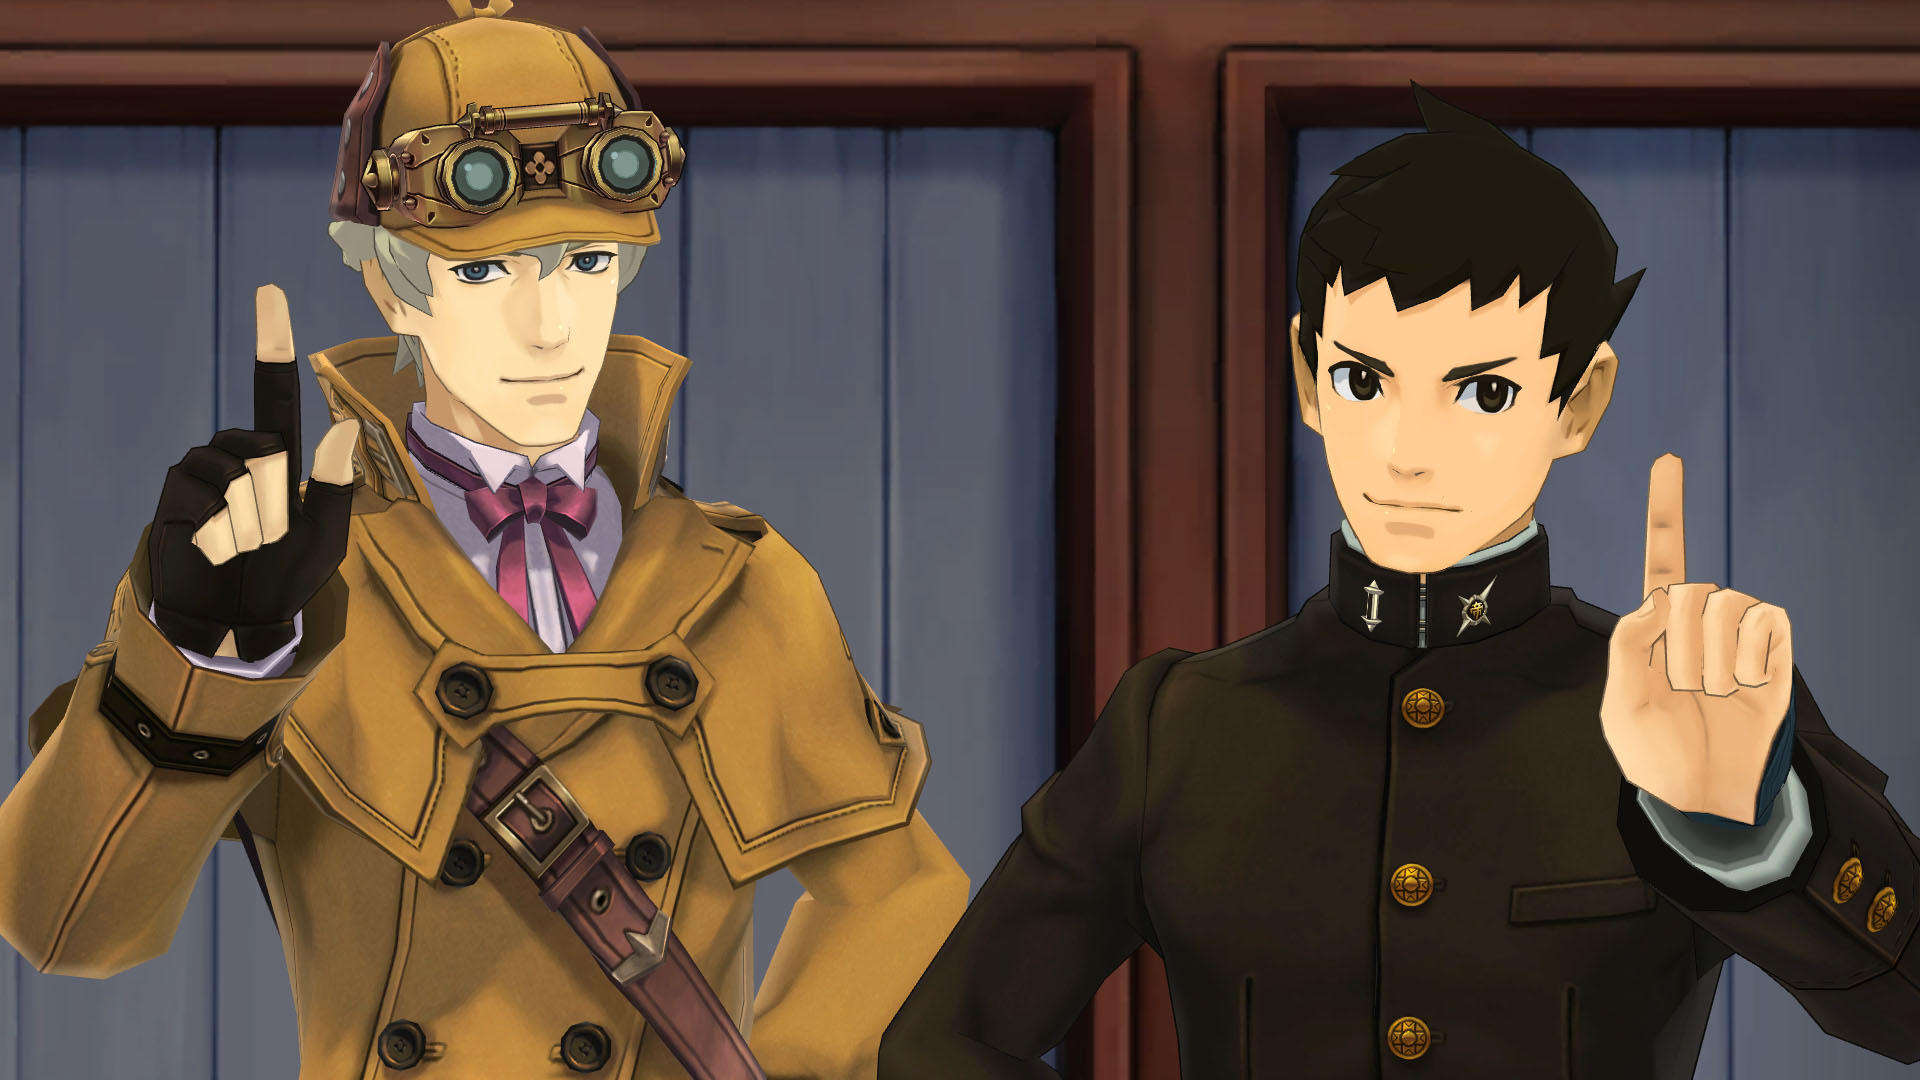 The Great Ace Attorney Herlock Sholmes